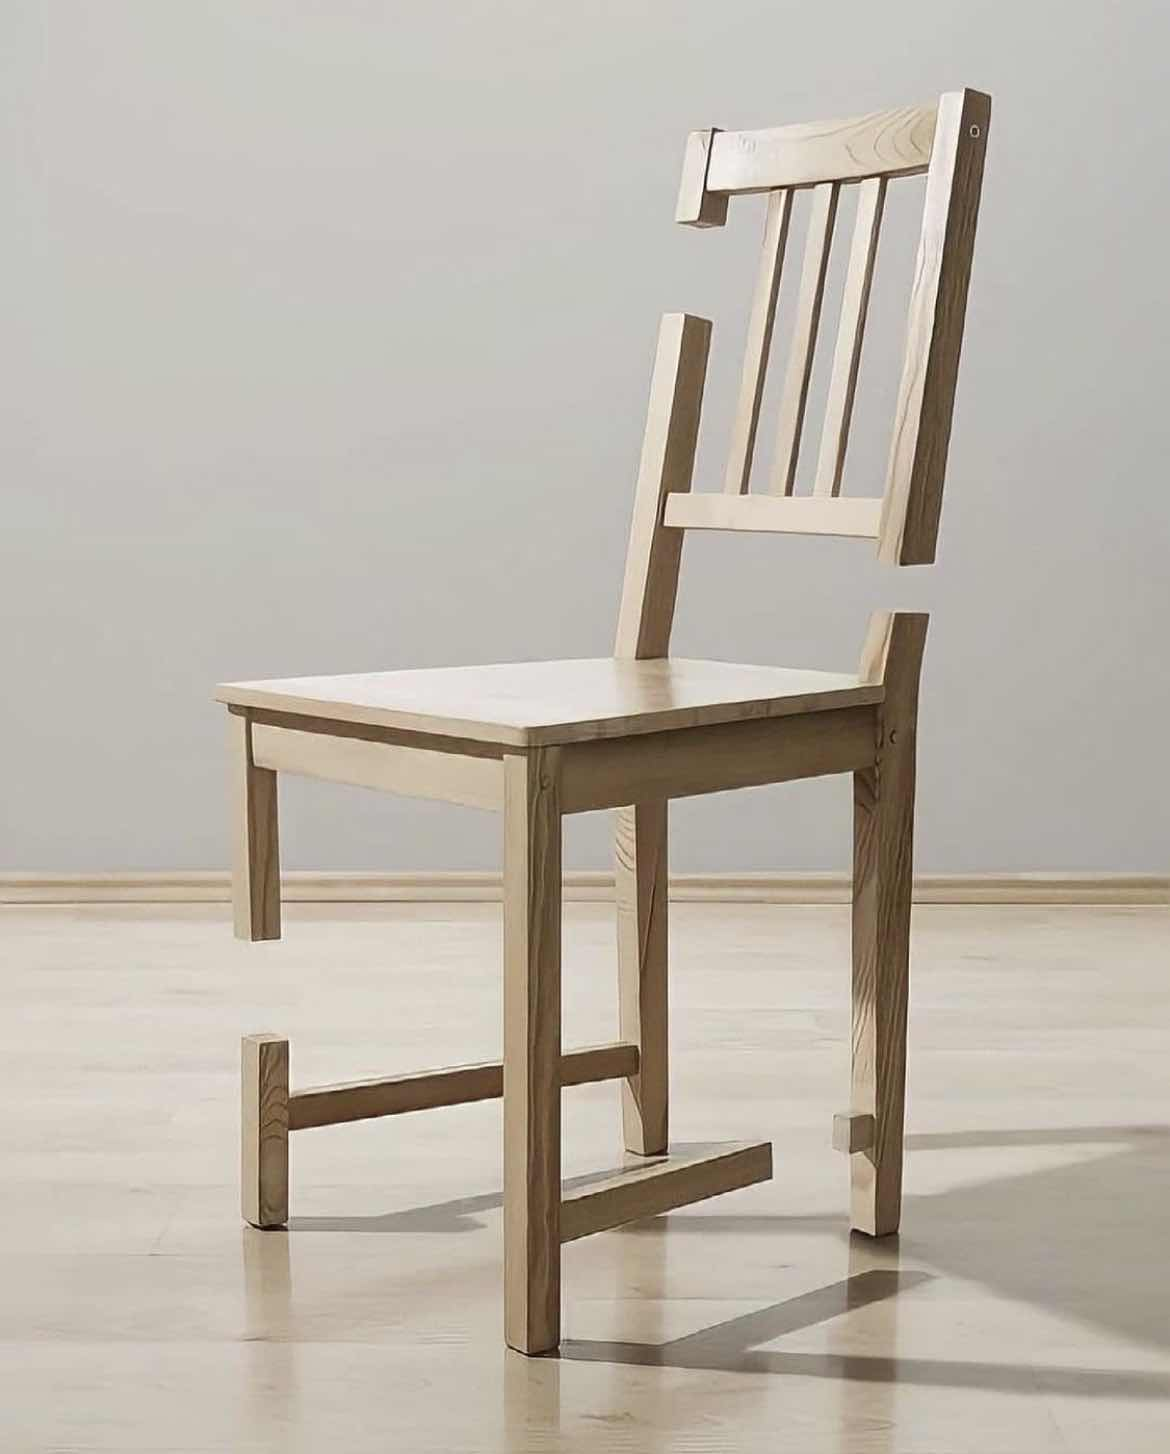 The Ghost Chair